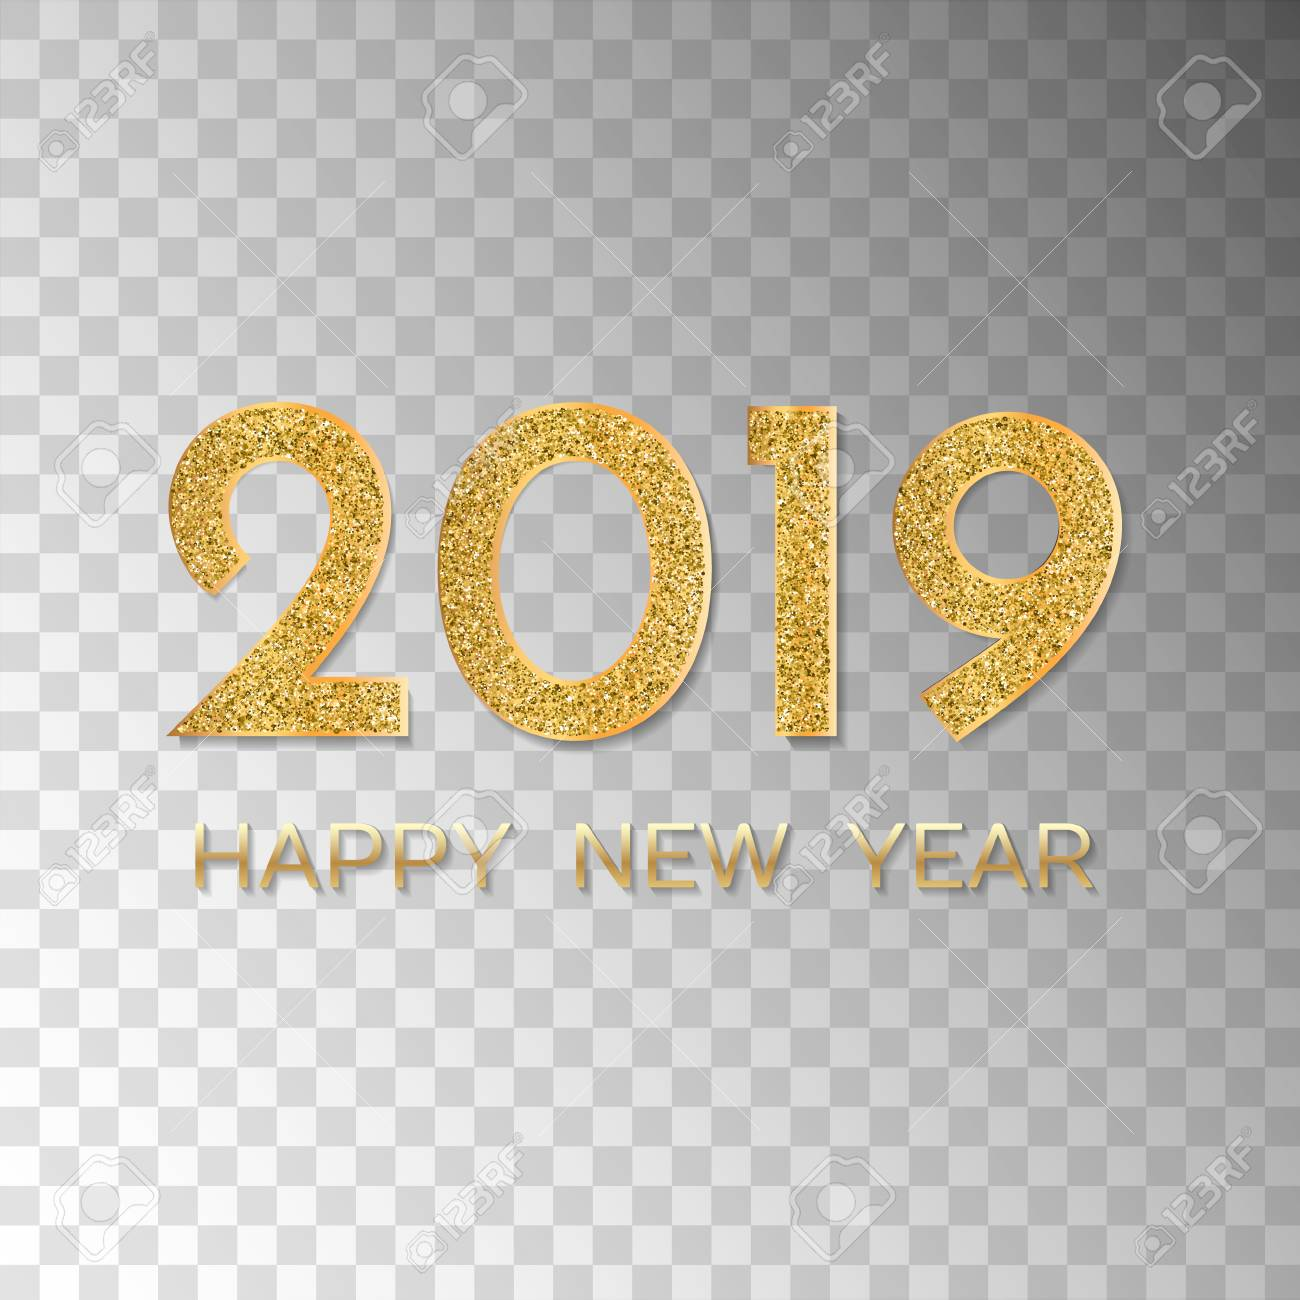 Happy New Year Transparent Background 31